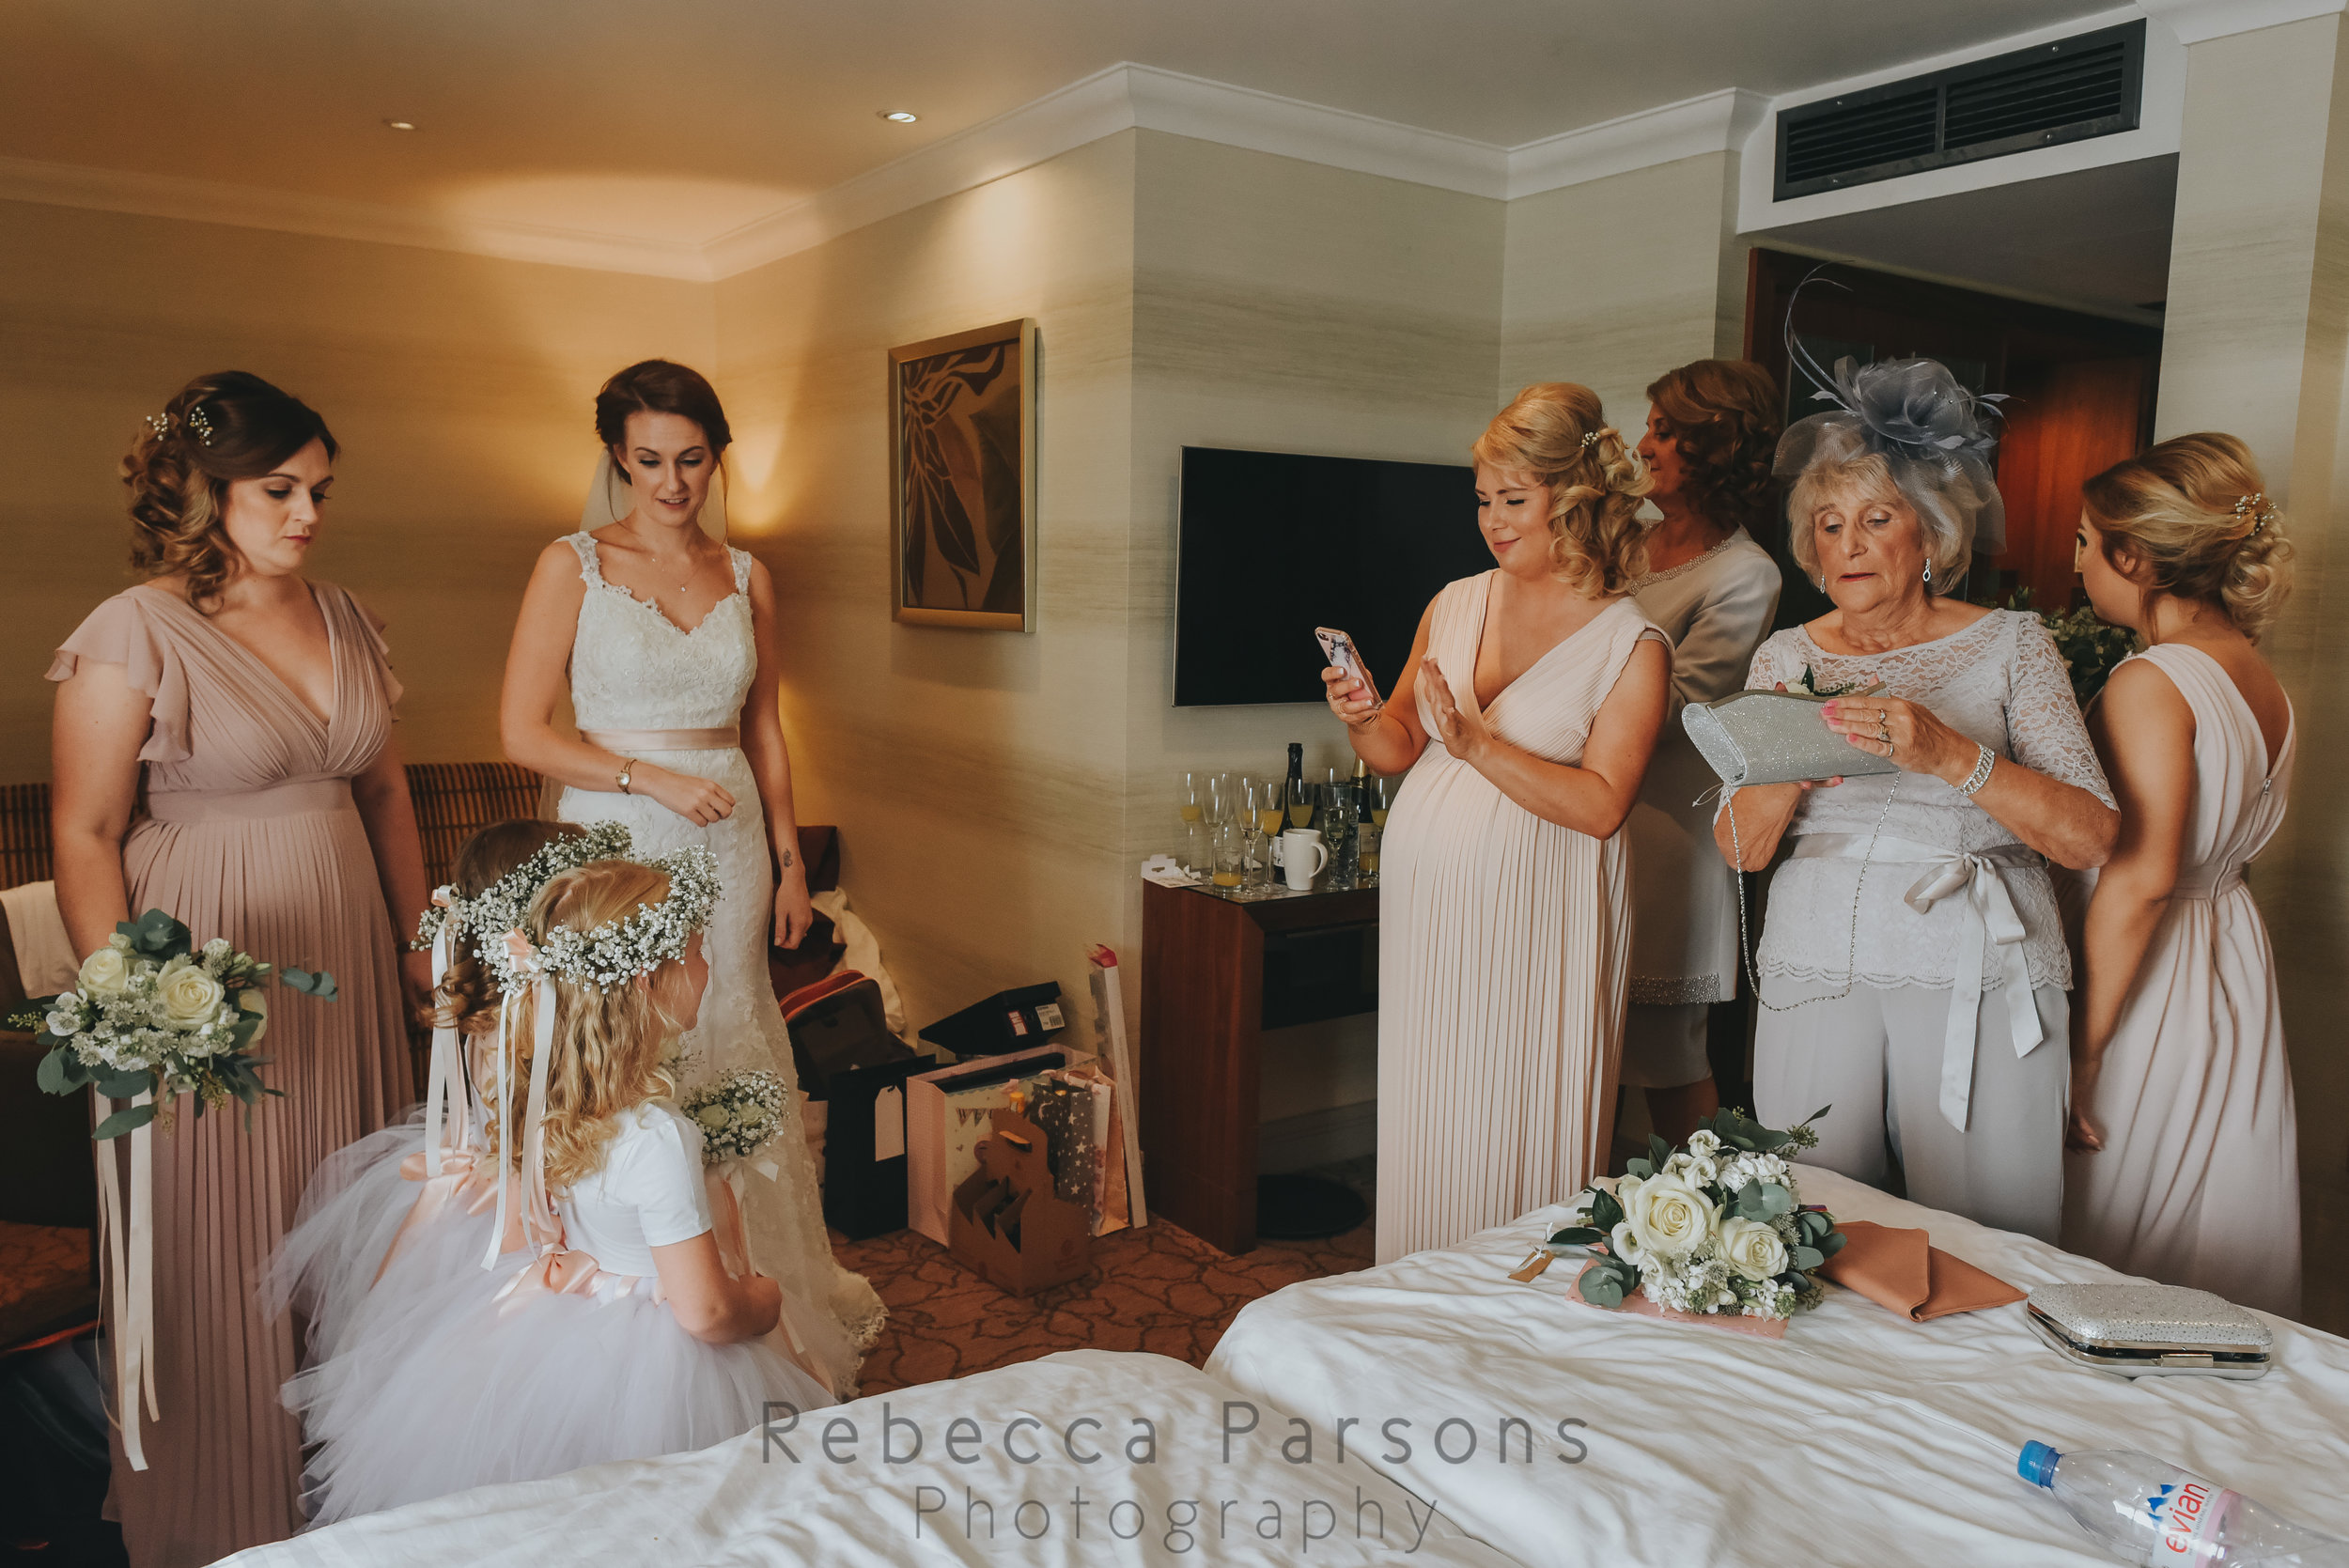 The bridal party about to leave their room